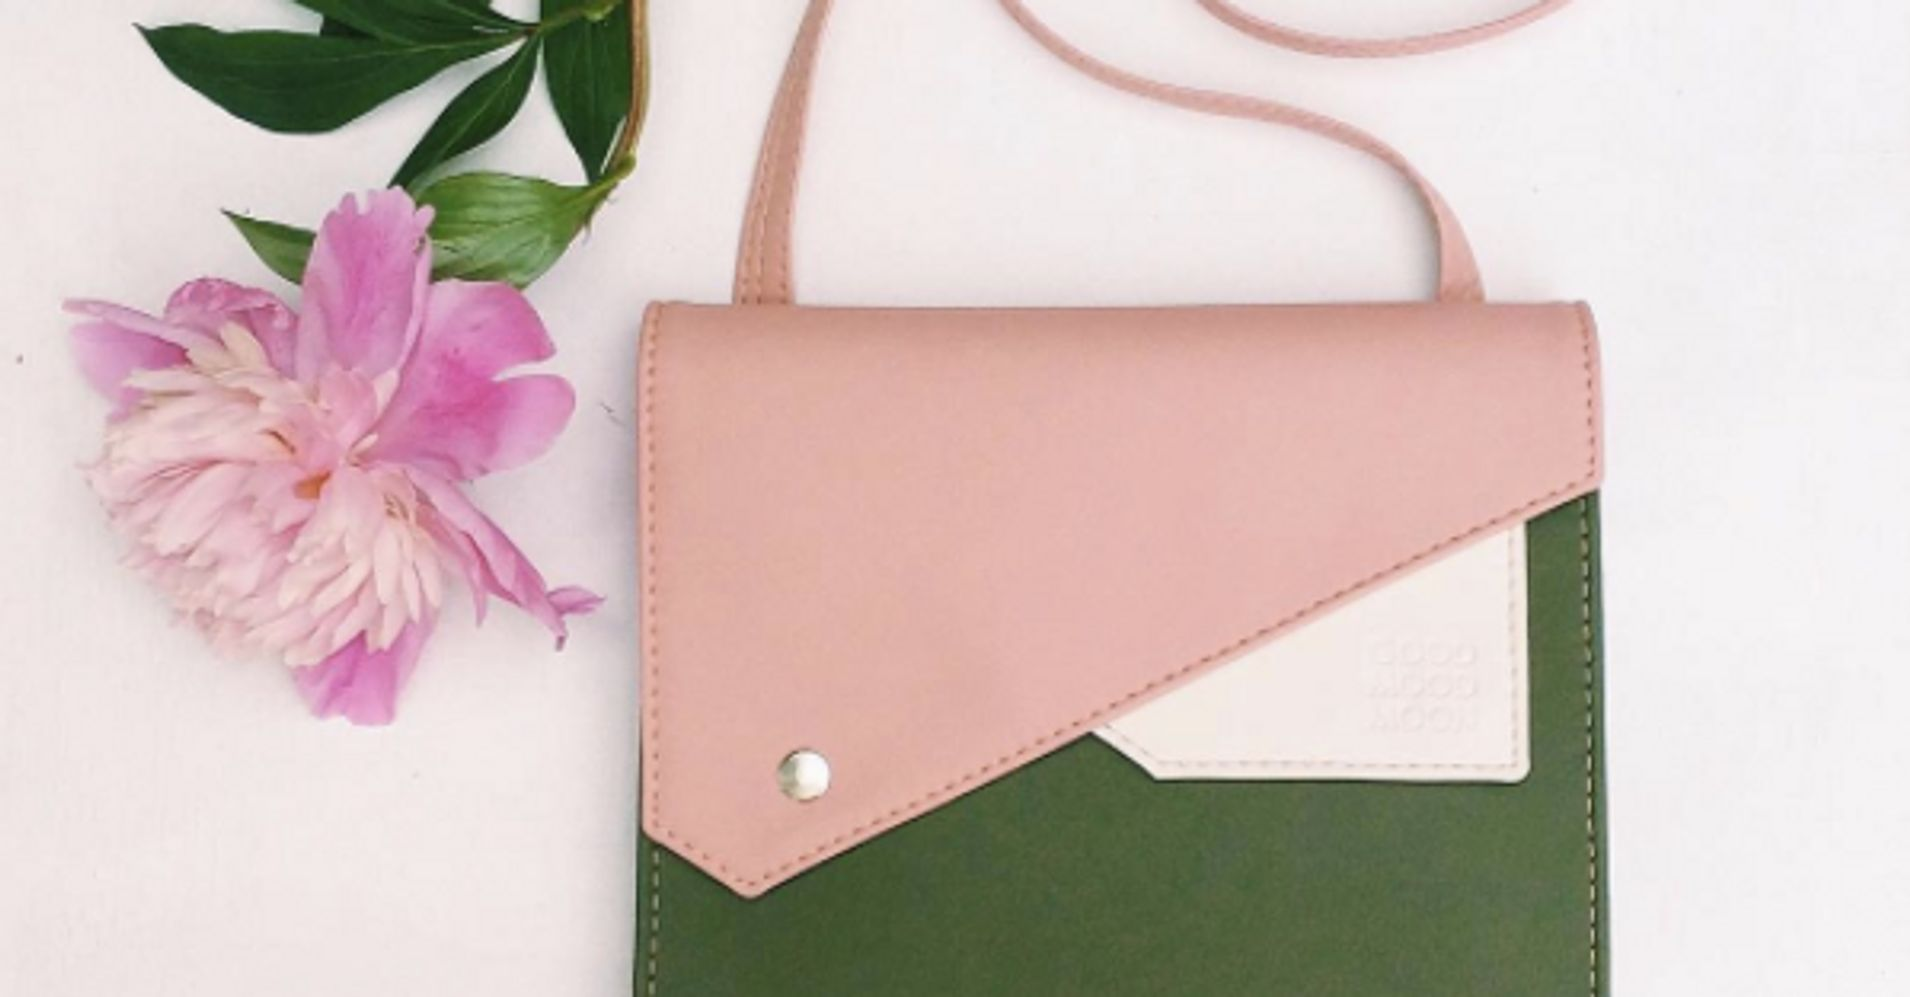 cbc2aaece 13 Vegan Leather Bags That Are Good For Your Conscience And Your Wallet |  HuffPost Life